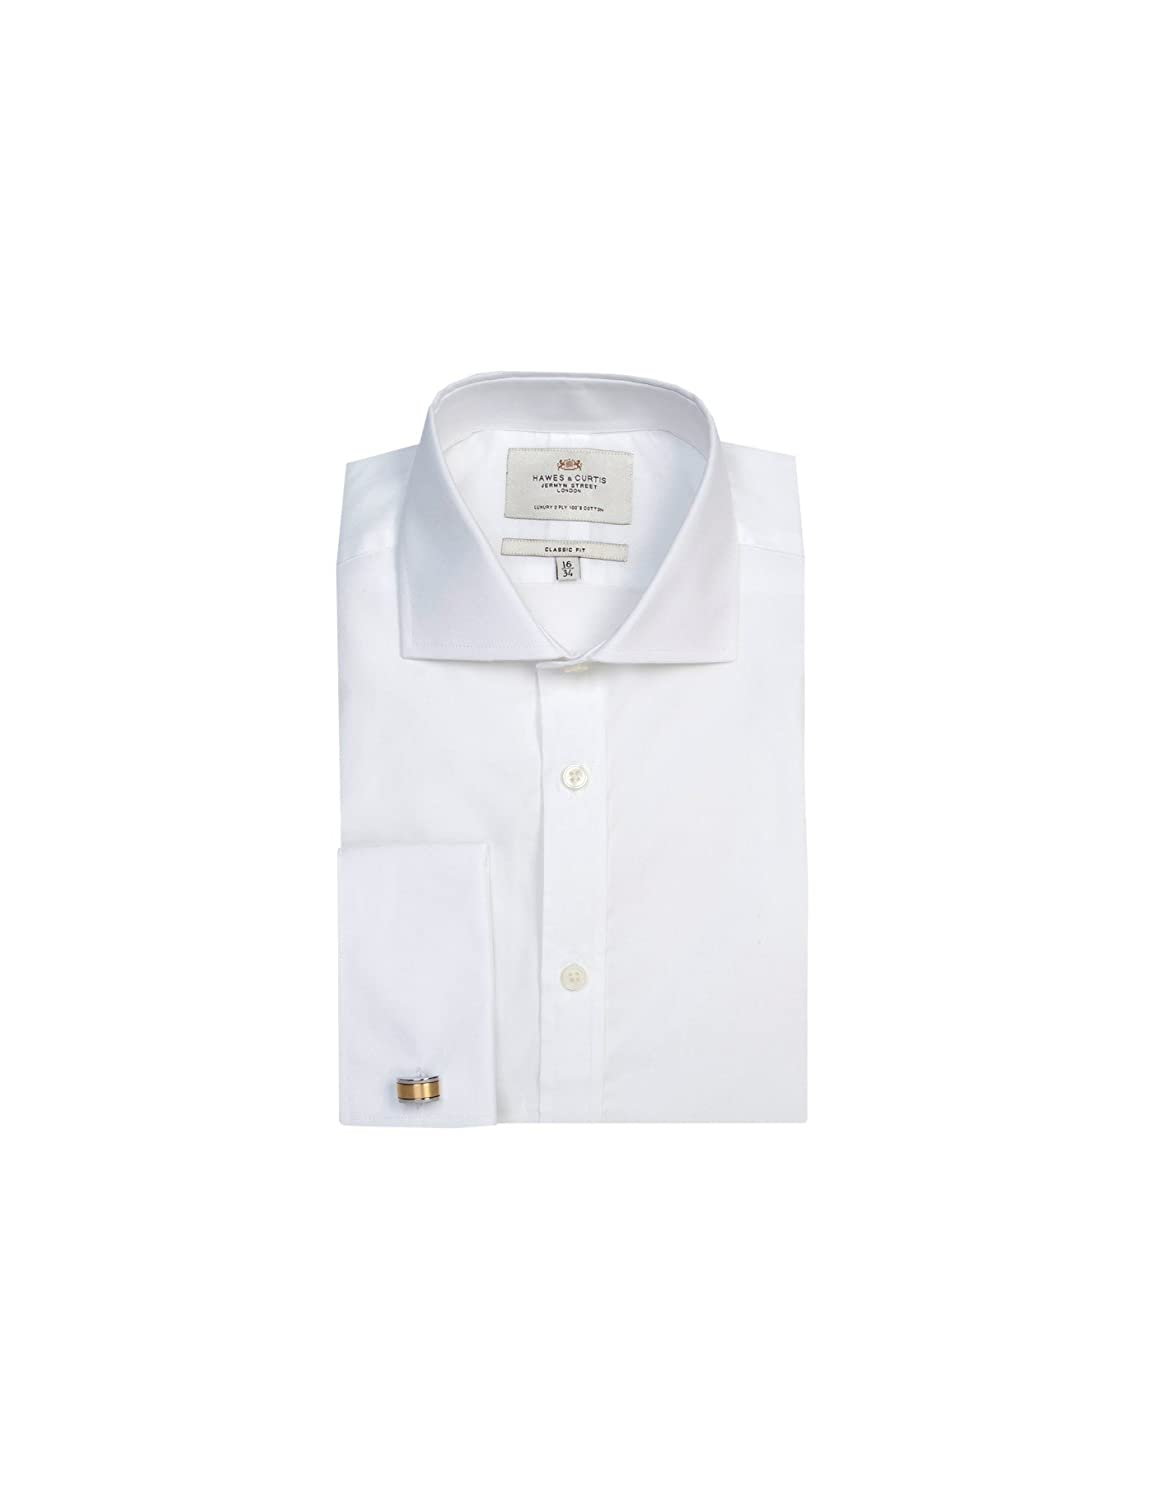 87f60d80140 HAWES   CURTIS Mens Formal Poplin Classic Fit Windsor Collar Double Cuff  Easy Iron Shirt  Amazon.co.uk  Clothing